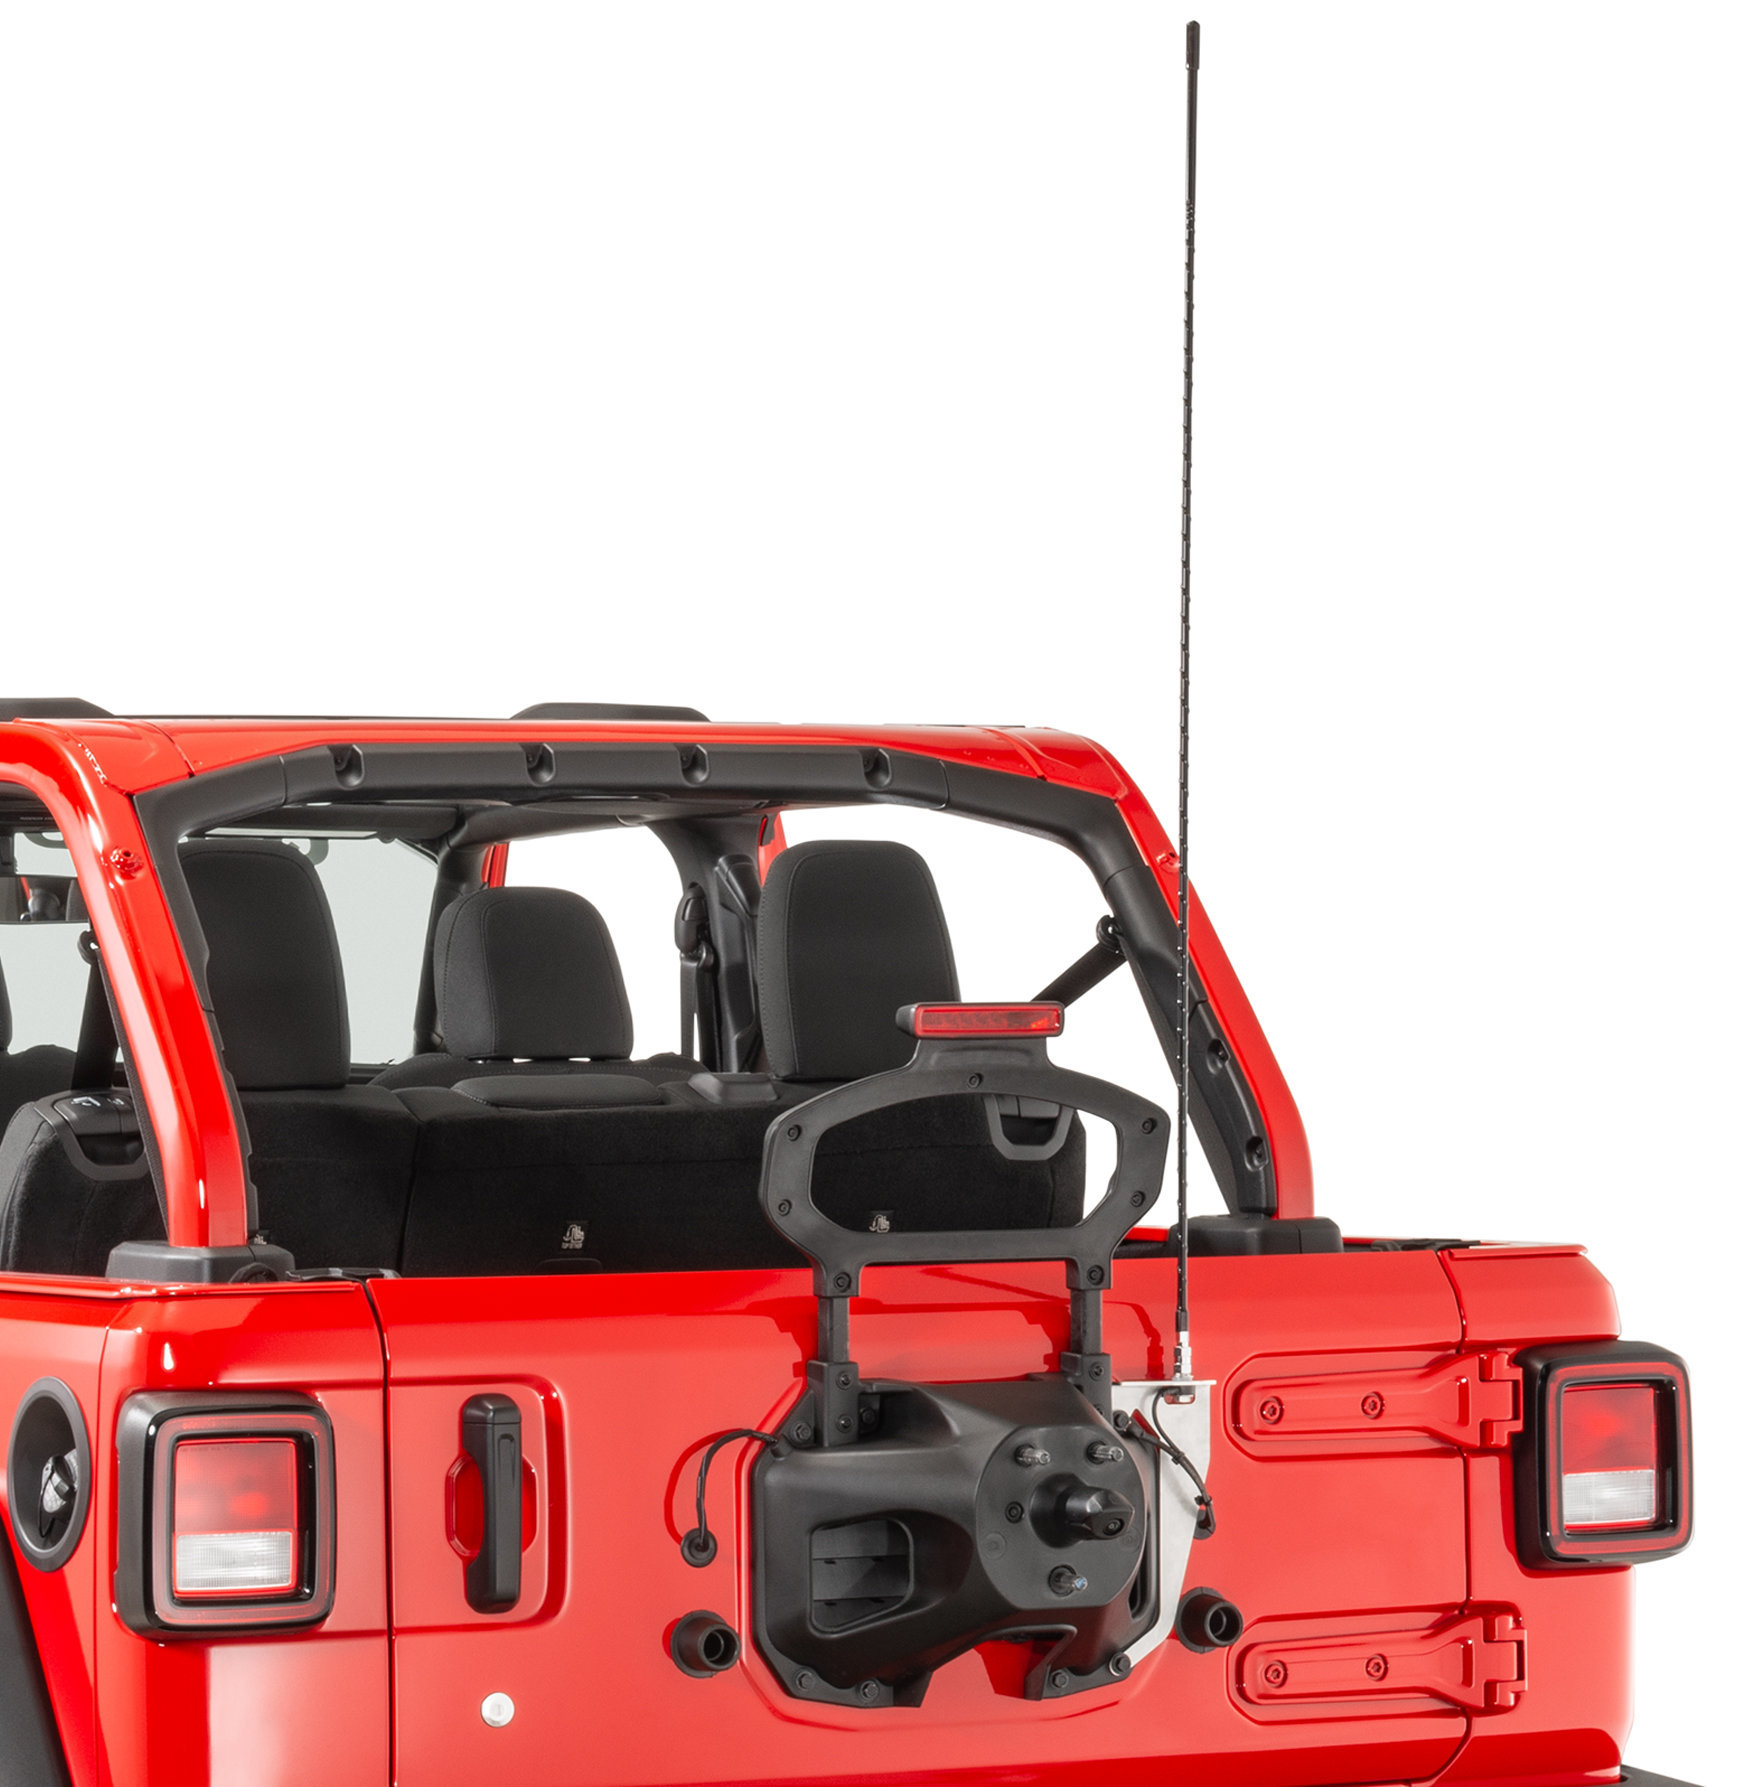 hight resolution of quadratec extreme duty stainless cb radio antenna rear tailgate mount with 48 antenna for 18 19 jeep wrangler jl quadratec